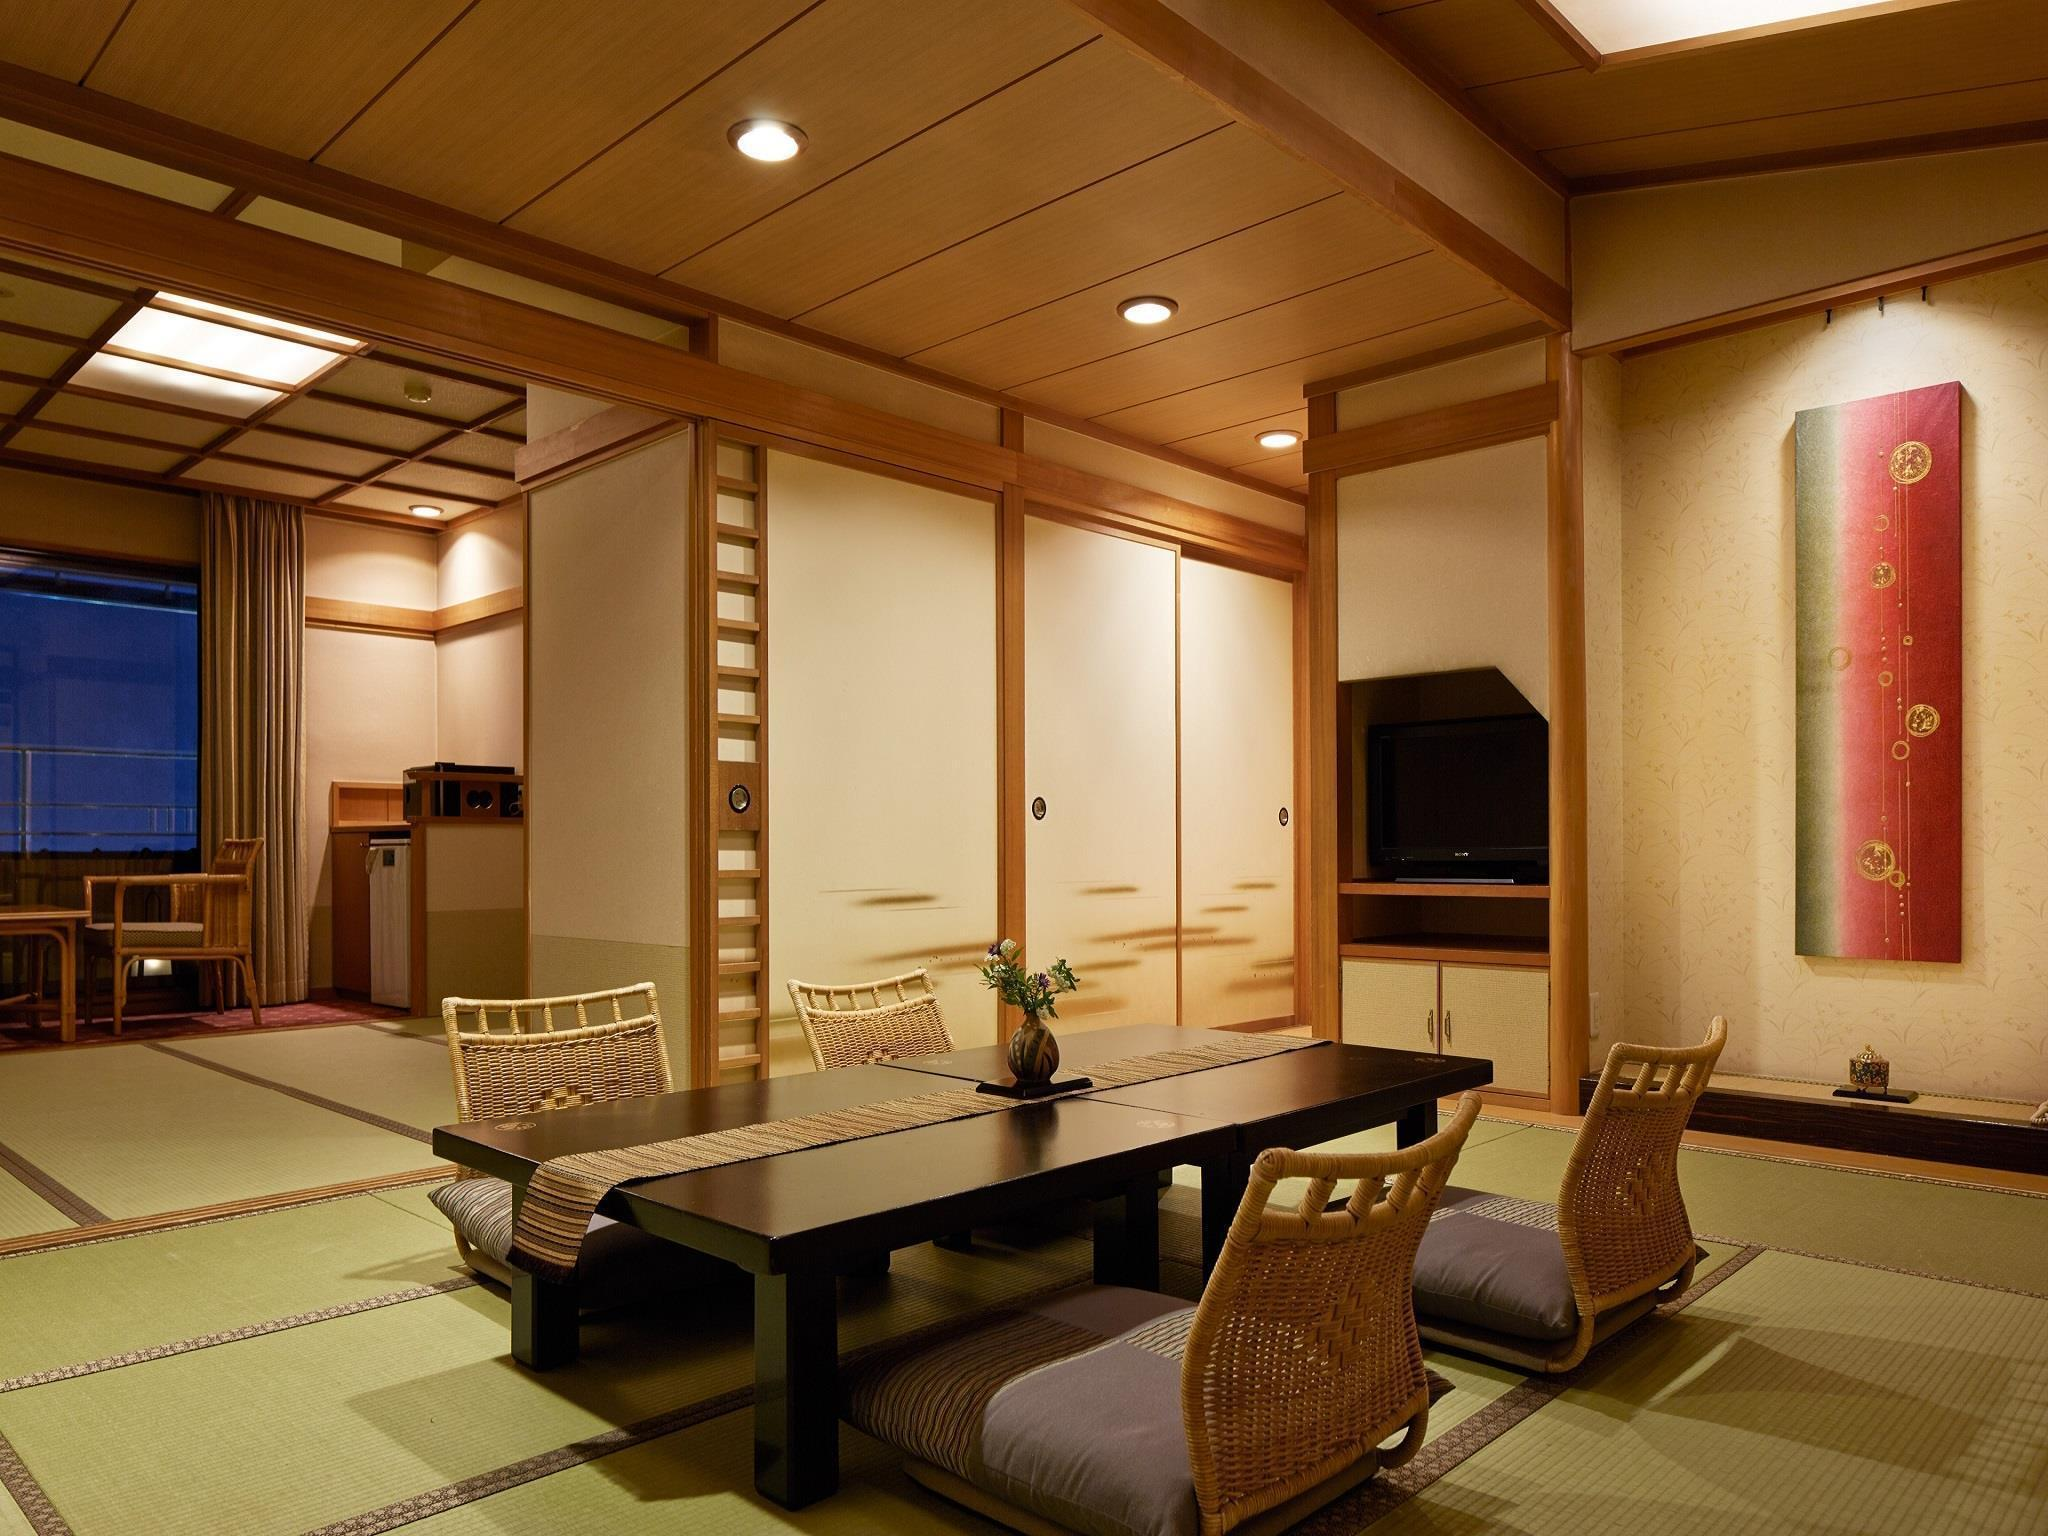 湖景豪華日式客房 (Deluxe Lake View Japanese Style Room)